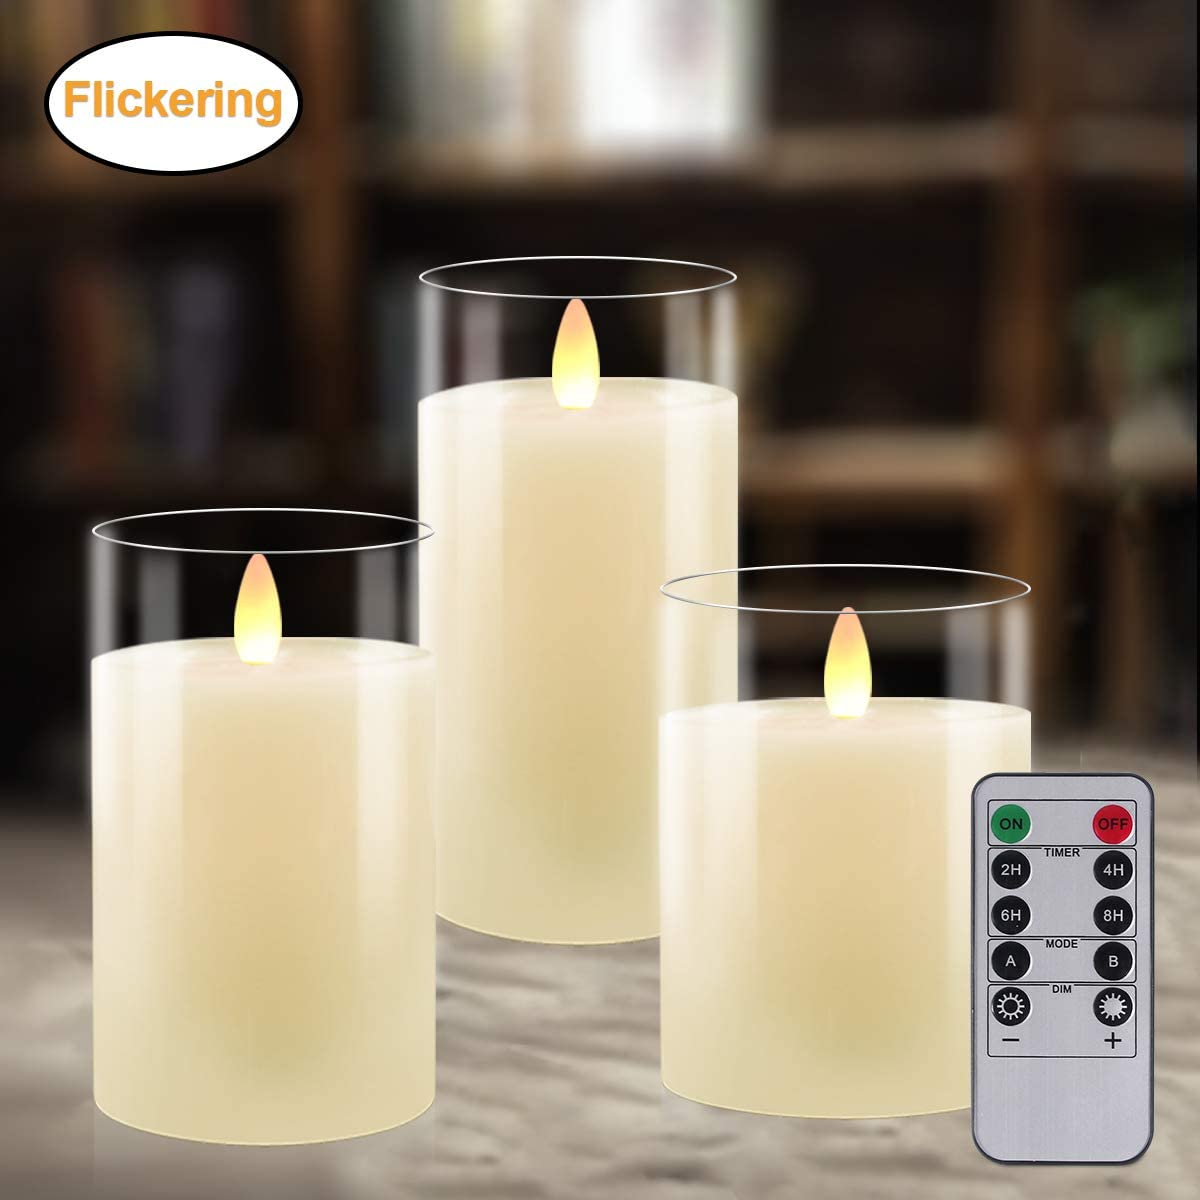 Flameless Candles Battery Operated Candles Real Wax Pillar LED Glass Candle Flickering Dancing Wick Tea Lights Votive Candles with 10-Key Remote and Cycling 24 Hours Timer 4 5 6 Set of 3 Amber